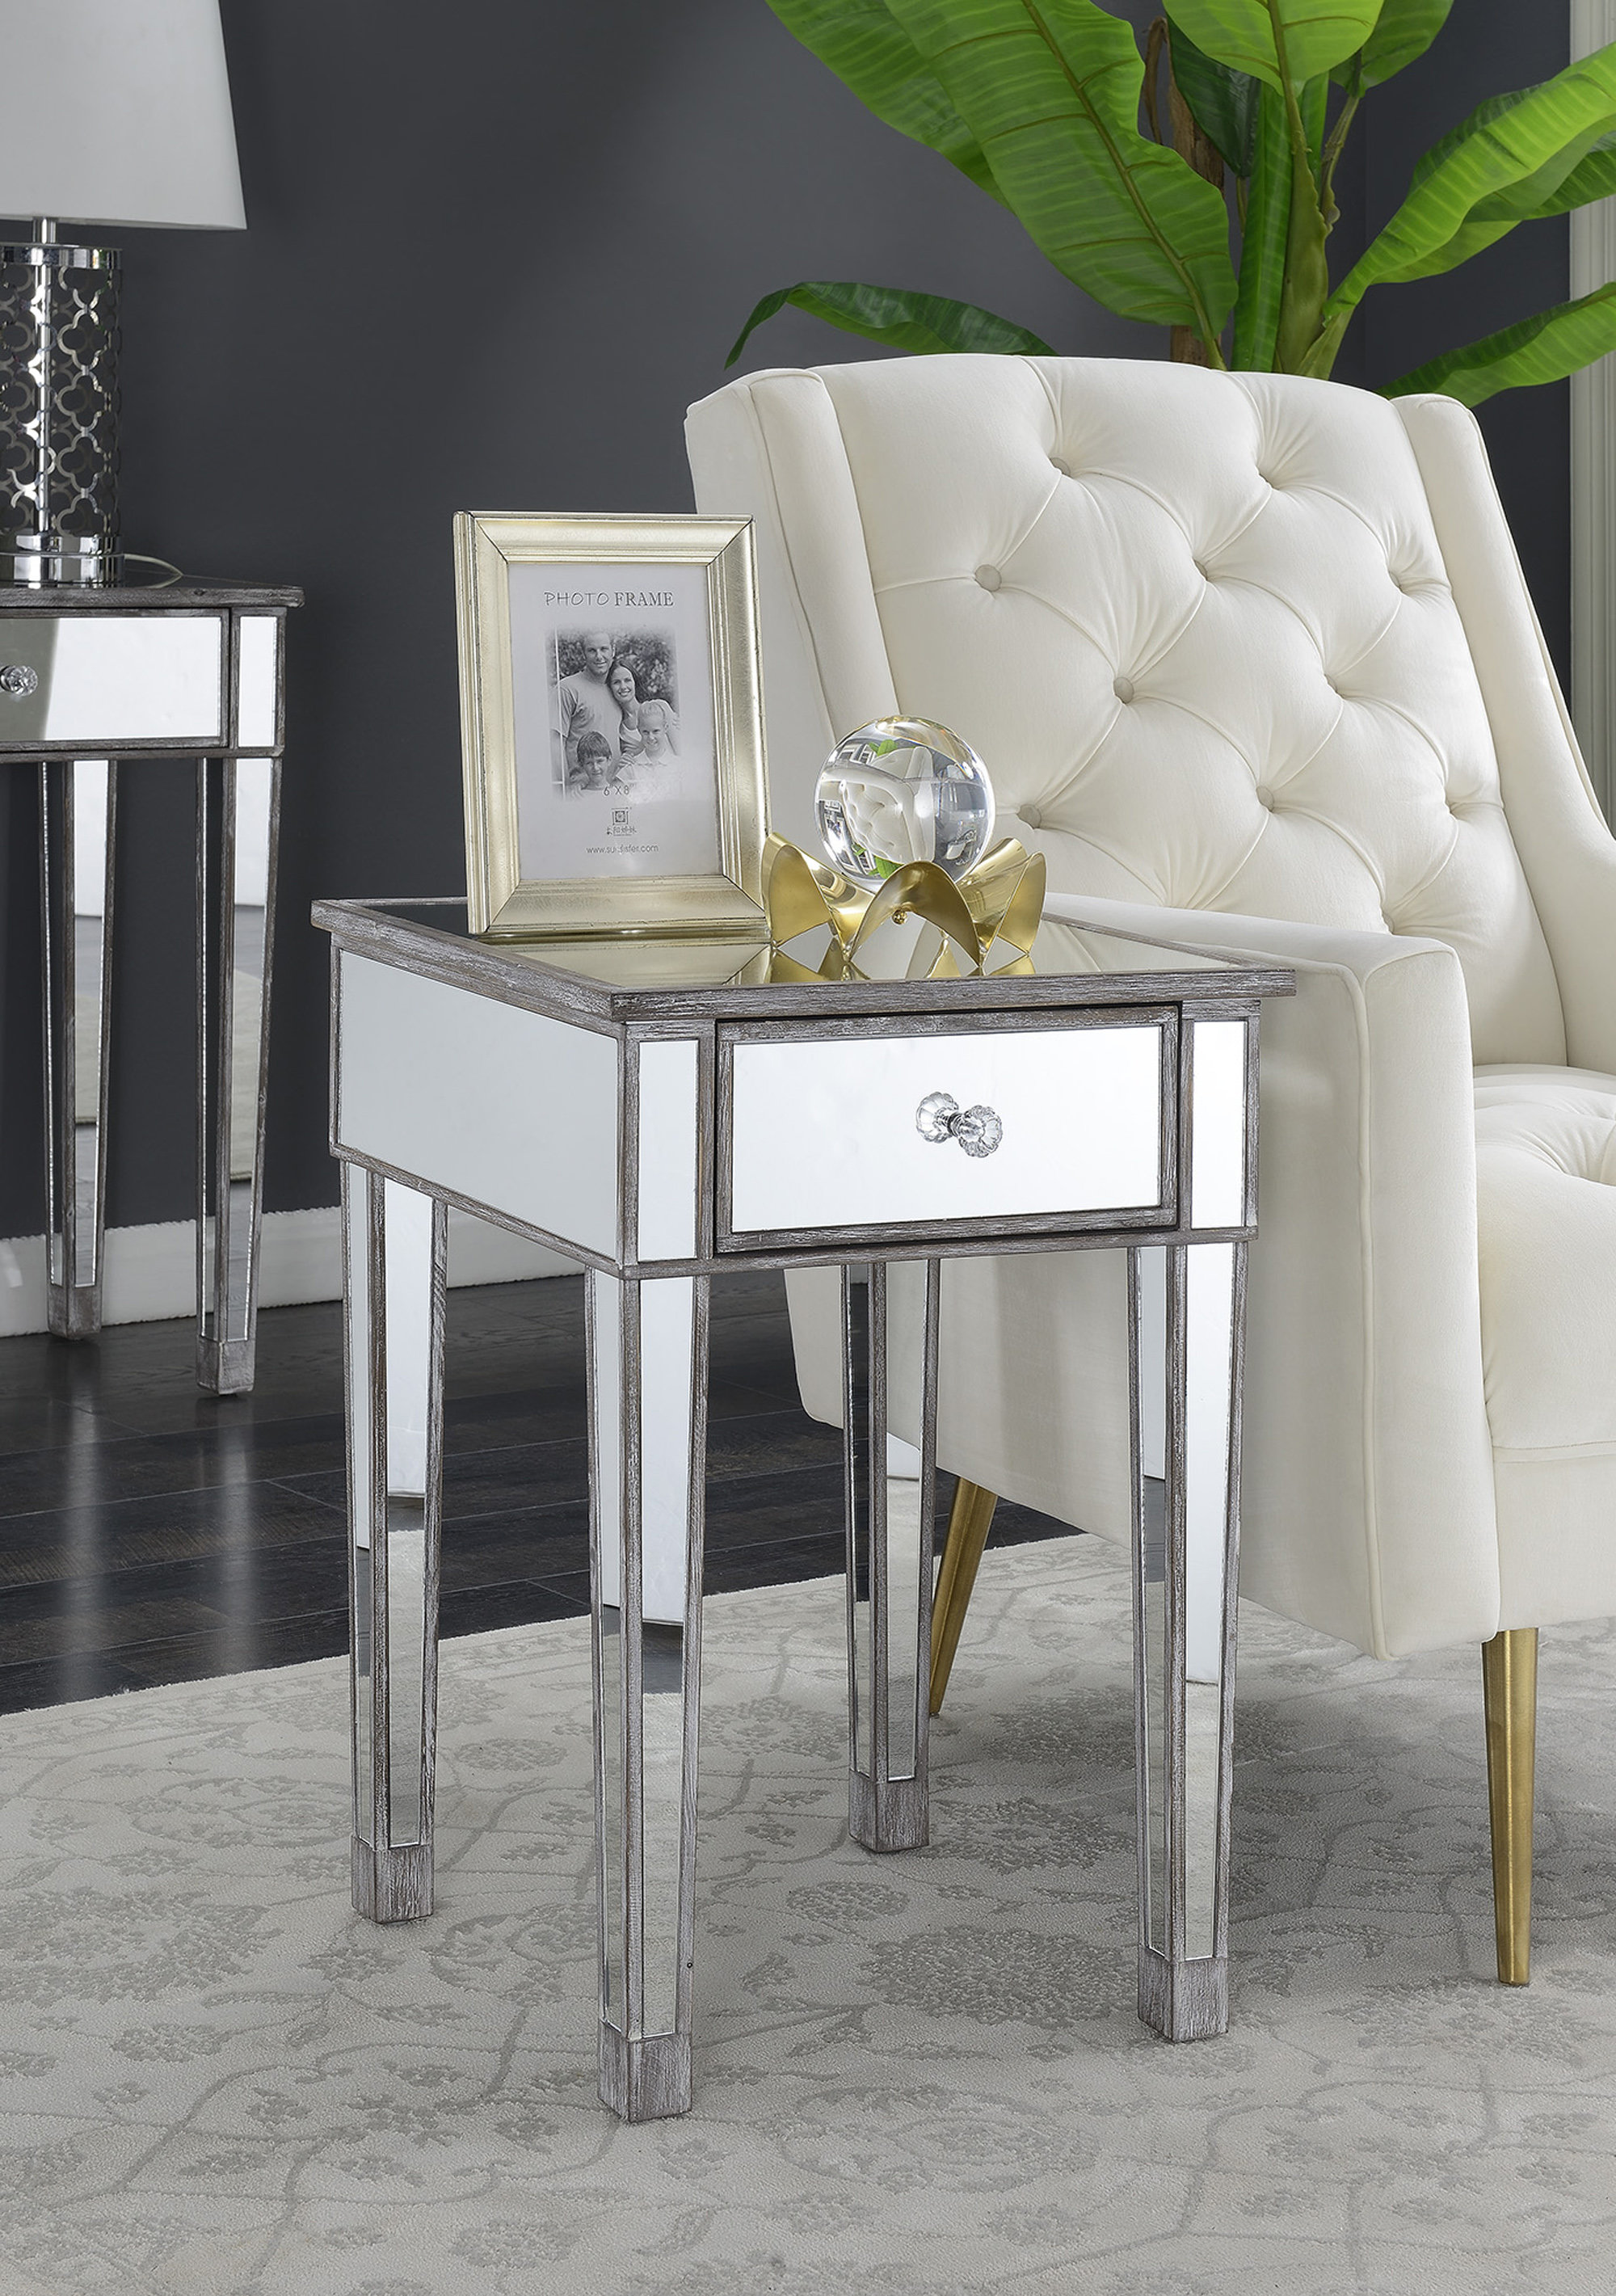 house hampton claybrooks mirrored end table with drawer reviews cuisinart meat claws pet furniture for dogs powell home furnishings vintage metal patio chairs winners homesense